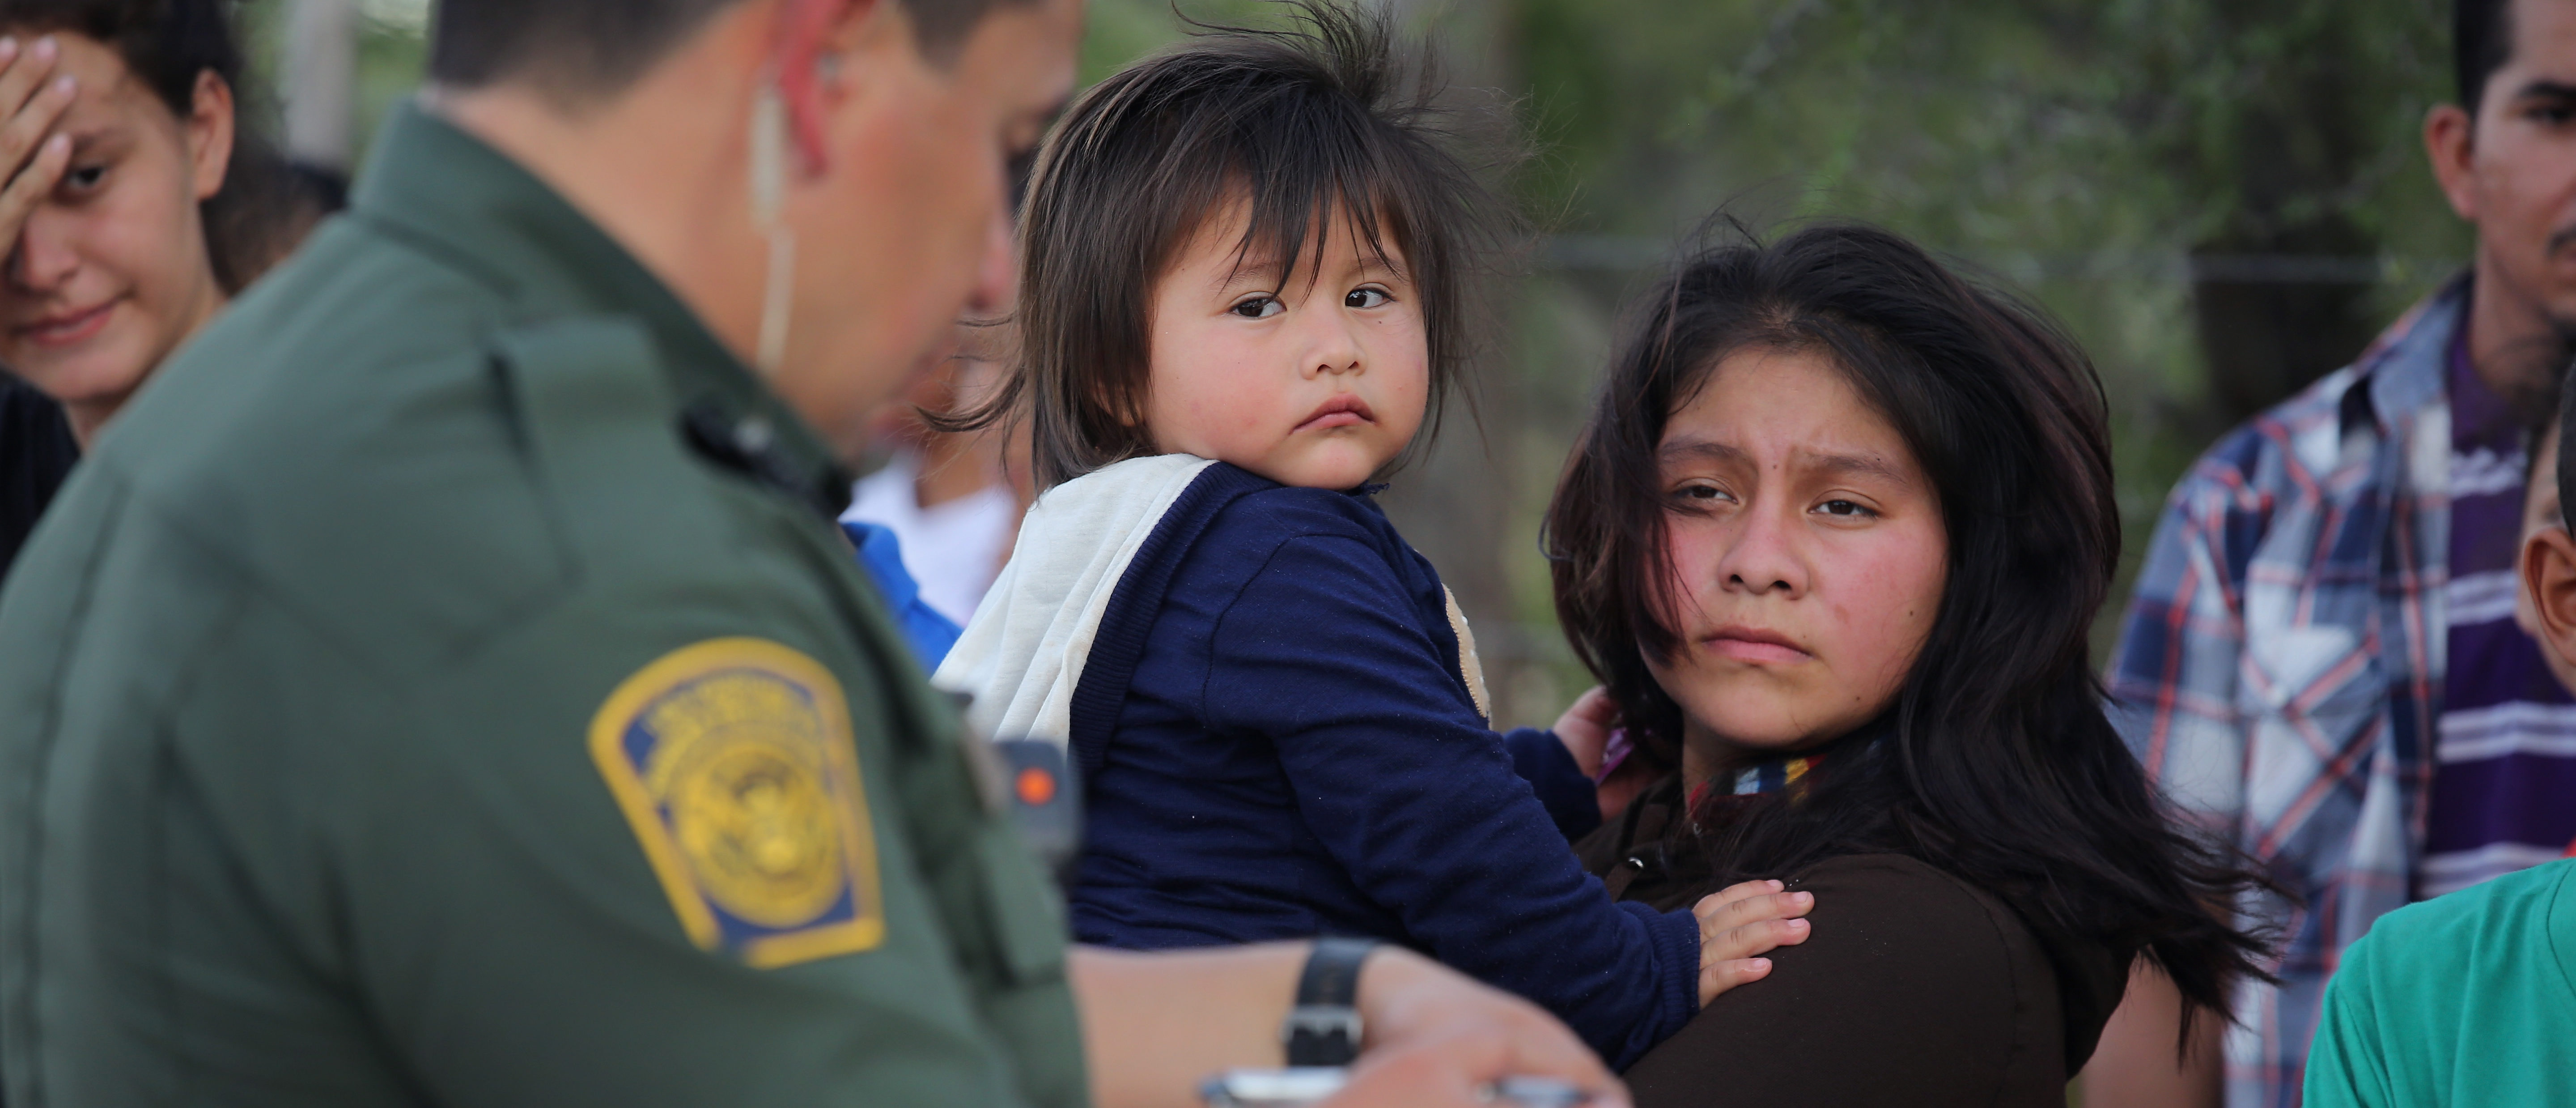 ROMA, TX - AUGUST 17: U.S. Border Patrol agents process immigrants from Central America while taking them into custody on August 17, 2016 near Roma, Texas. Thousands of Central American families continue to cross the Rio Grande at the Texas-Mexico border, seeking asylum in the United States. Border security has become a major issue in the U.S. Presidential campaign. (Photo by John Moore/Getty Images)